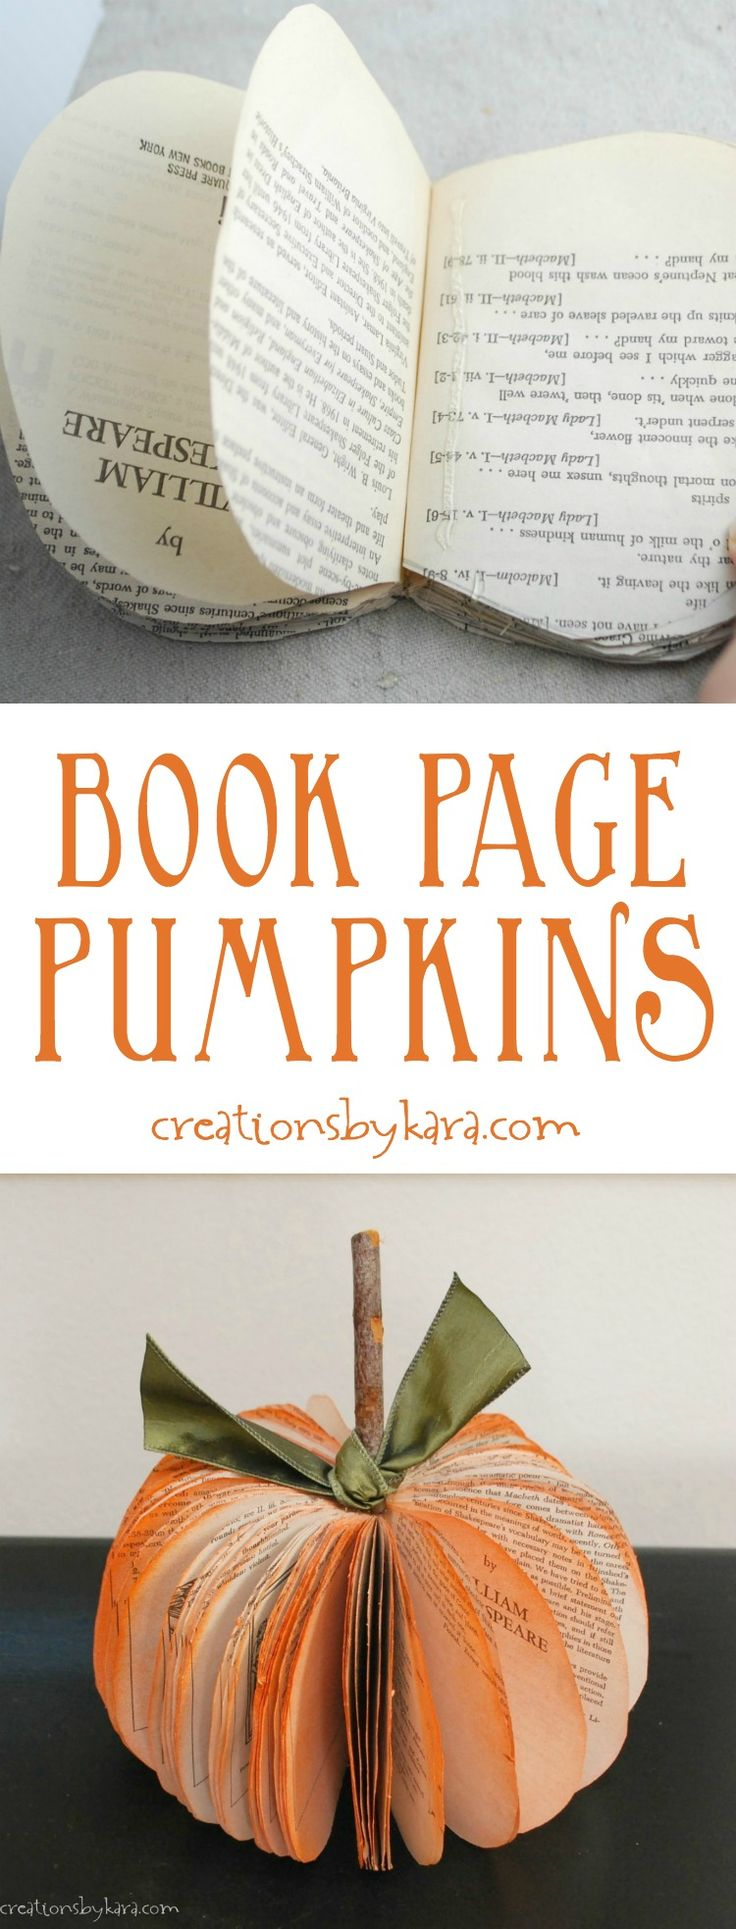 This Book Page Pumpkin is one of my most popular tutorials. Book page pumpkins are inexpensive, easy to make, and make such fun fall decor!